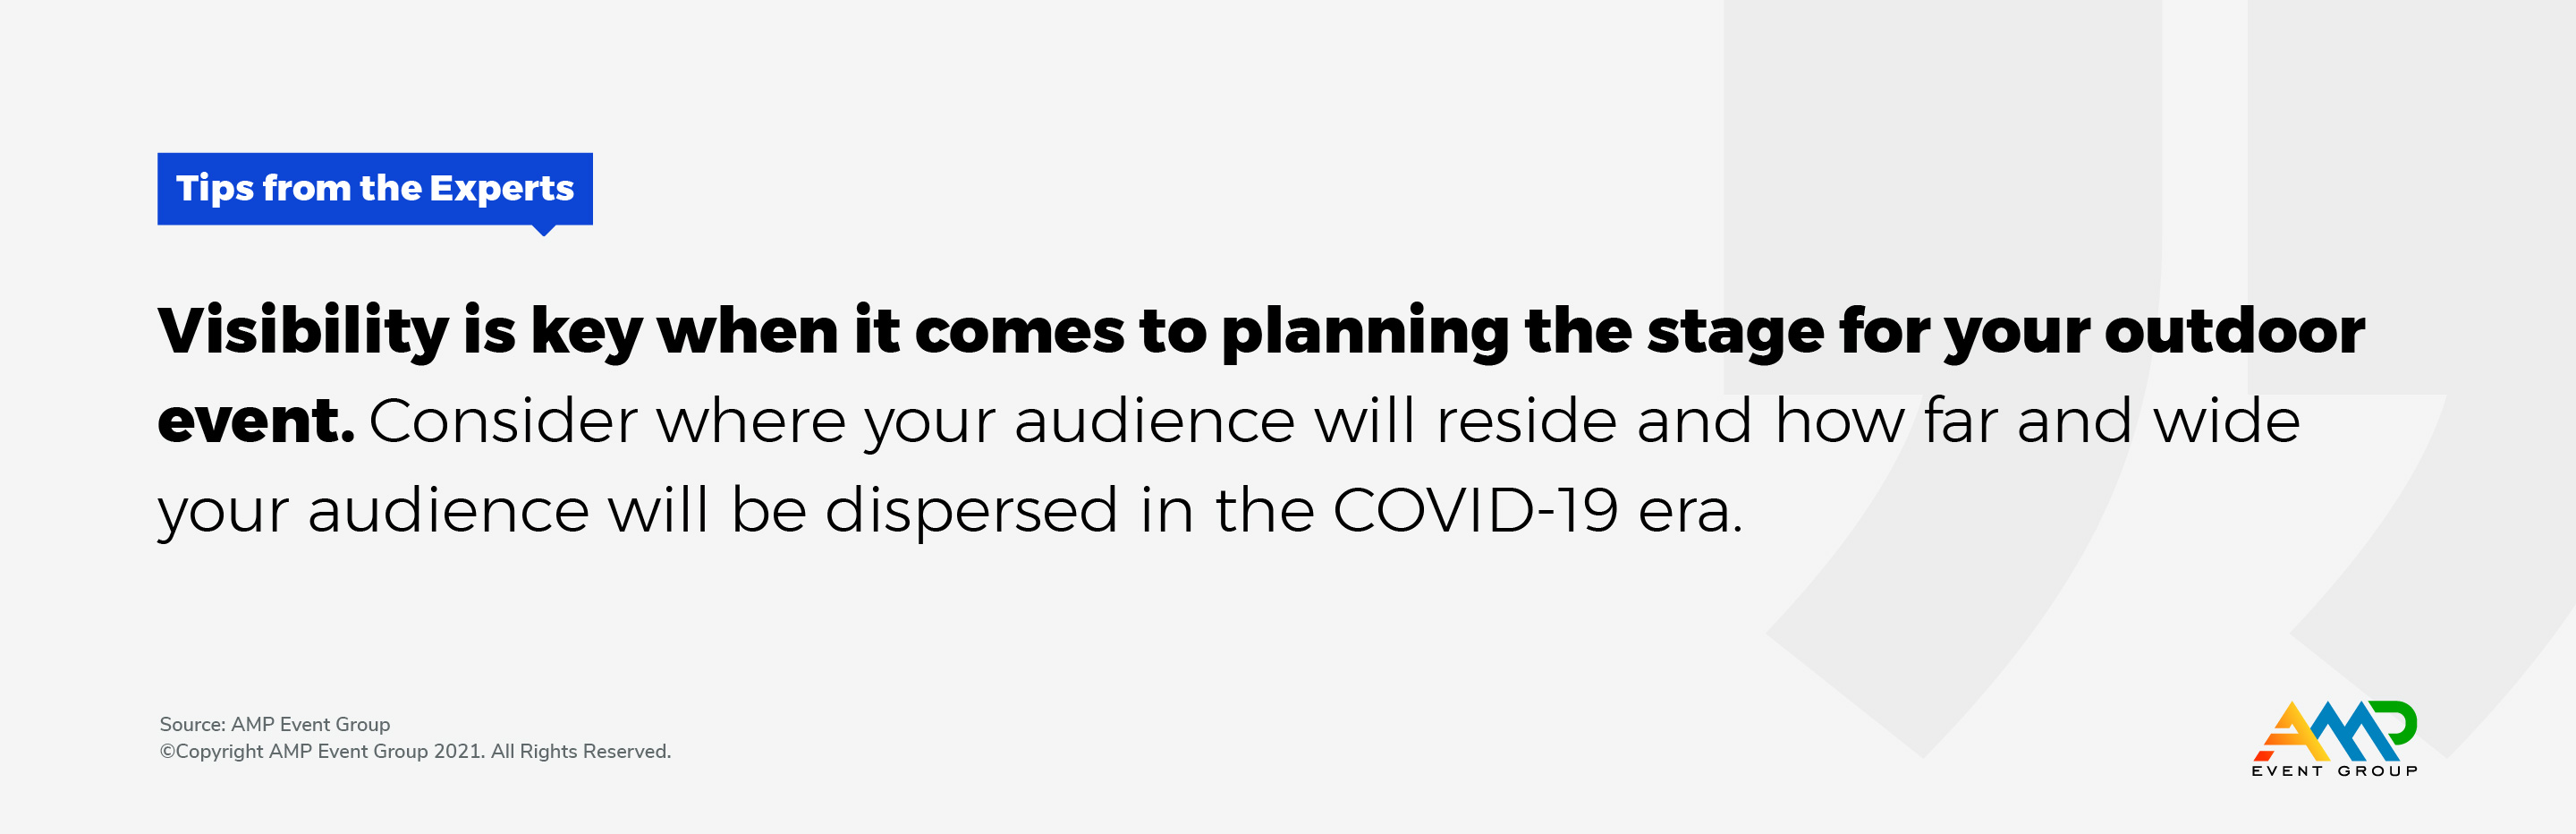 Consider where your audience will reside and how far and wide your audience will be dispersed in the COVID-19 era.